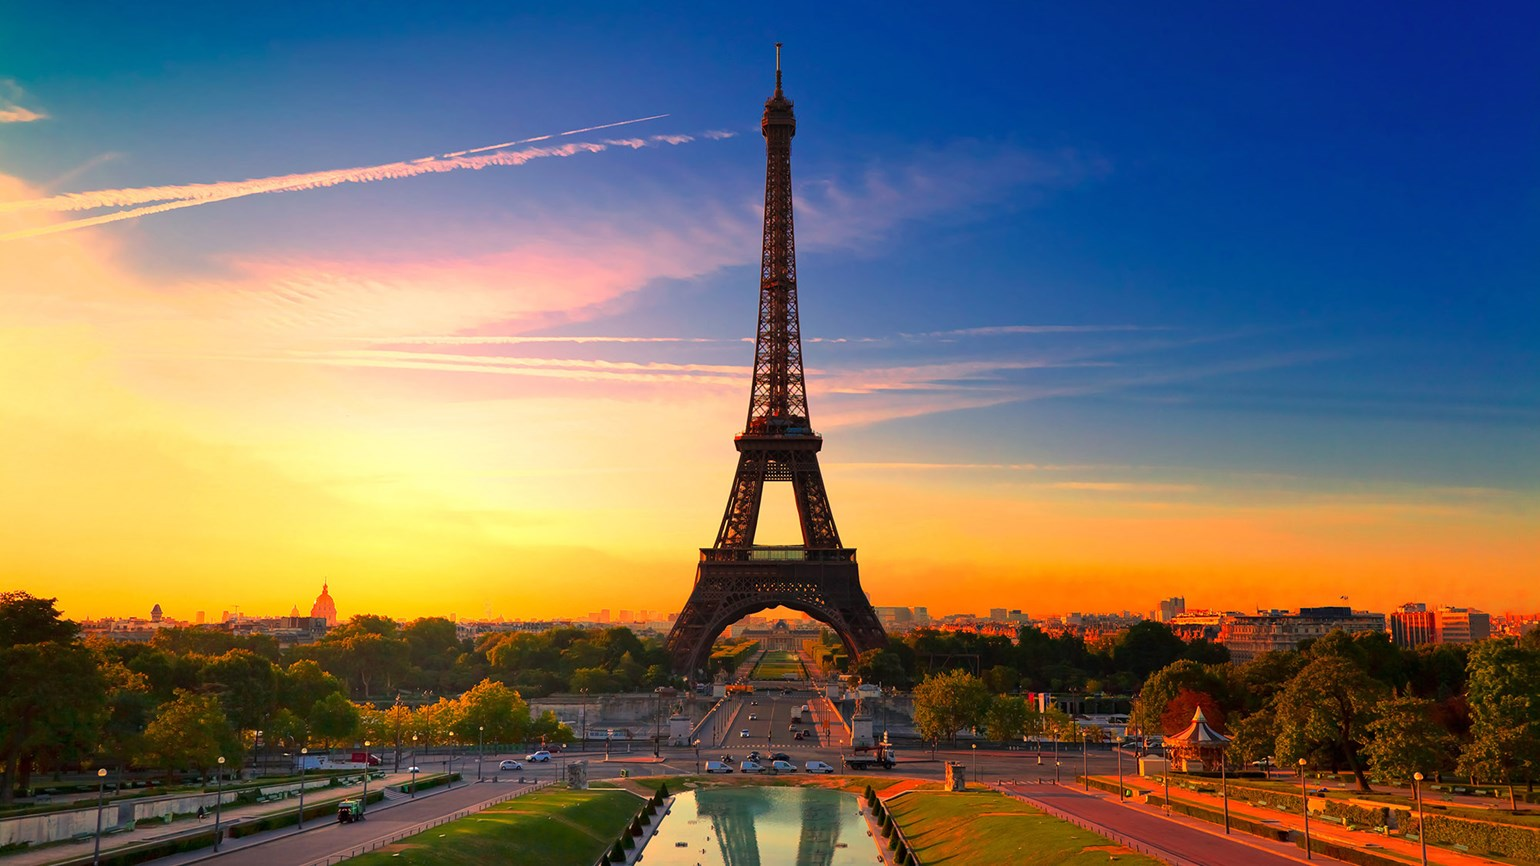 Paris Eiffel Tower [credit: INTERPIXELS/Shutterstock.com]